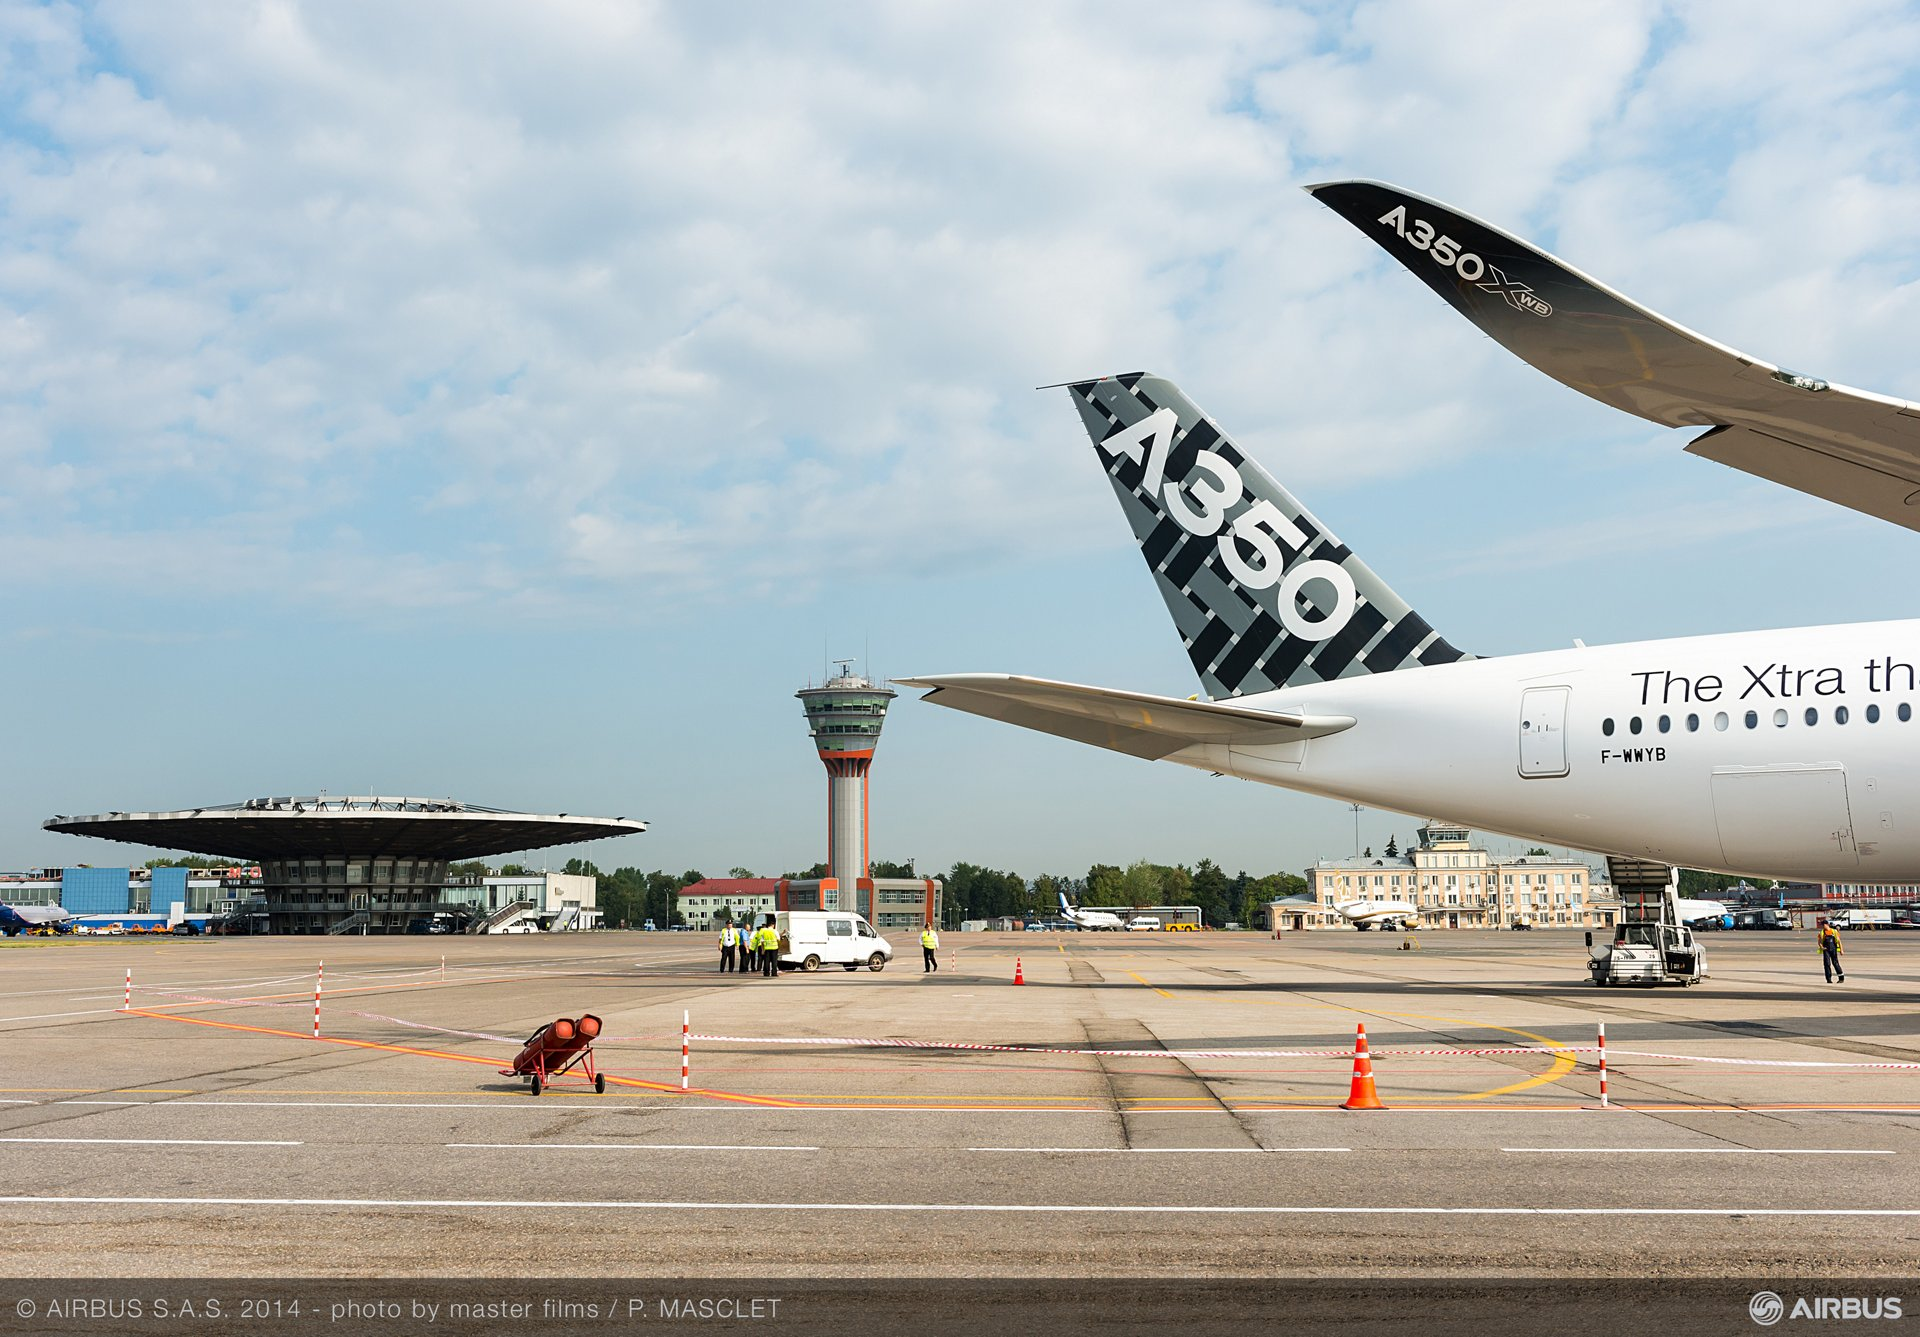 A350 XWB - ROUTE PROVING TRIP 4 - MOSCOW - CLOSE UP